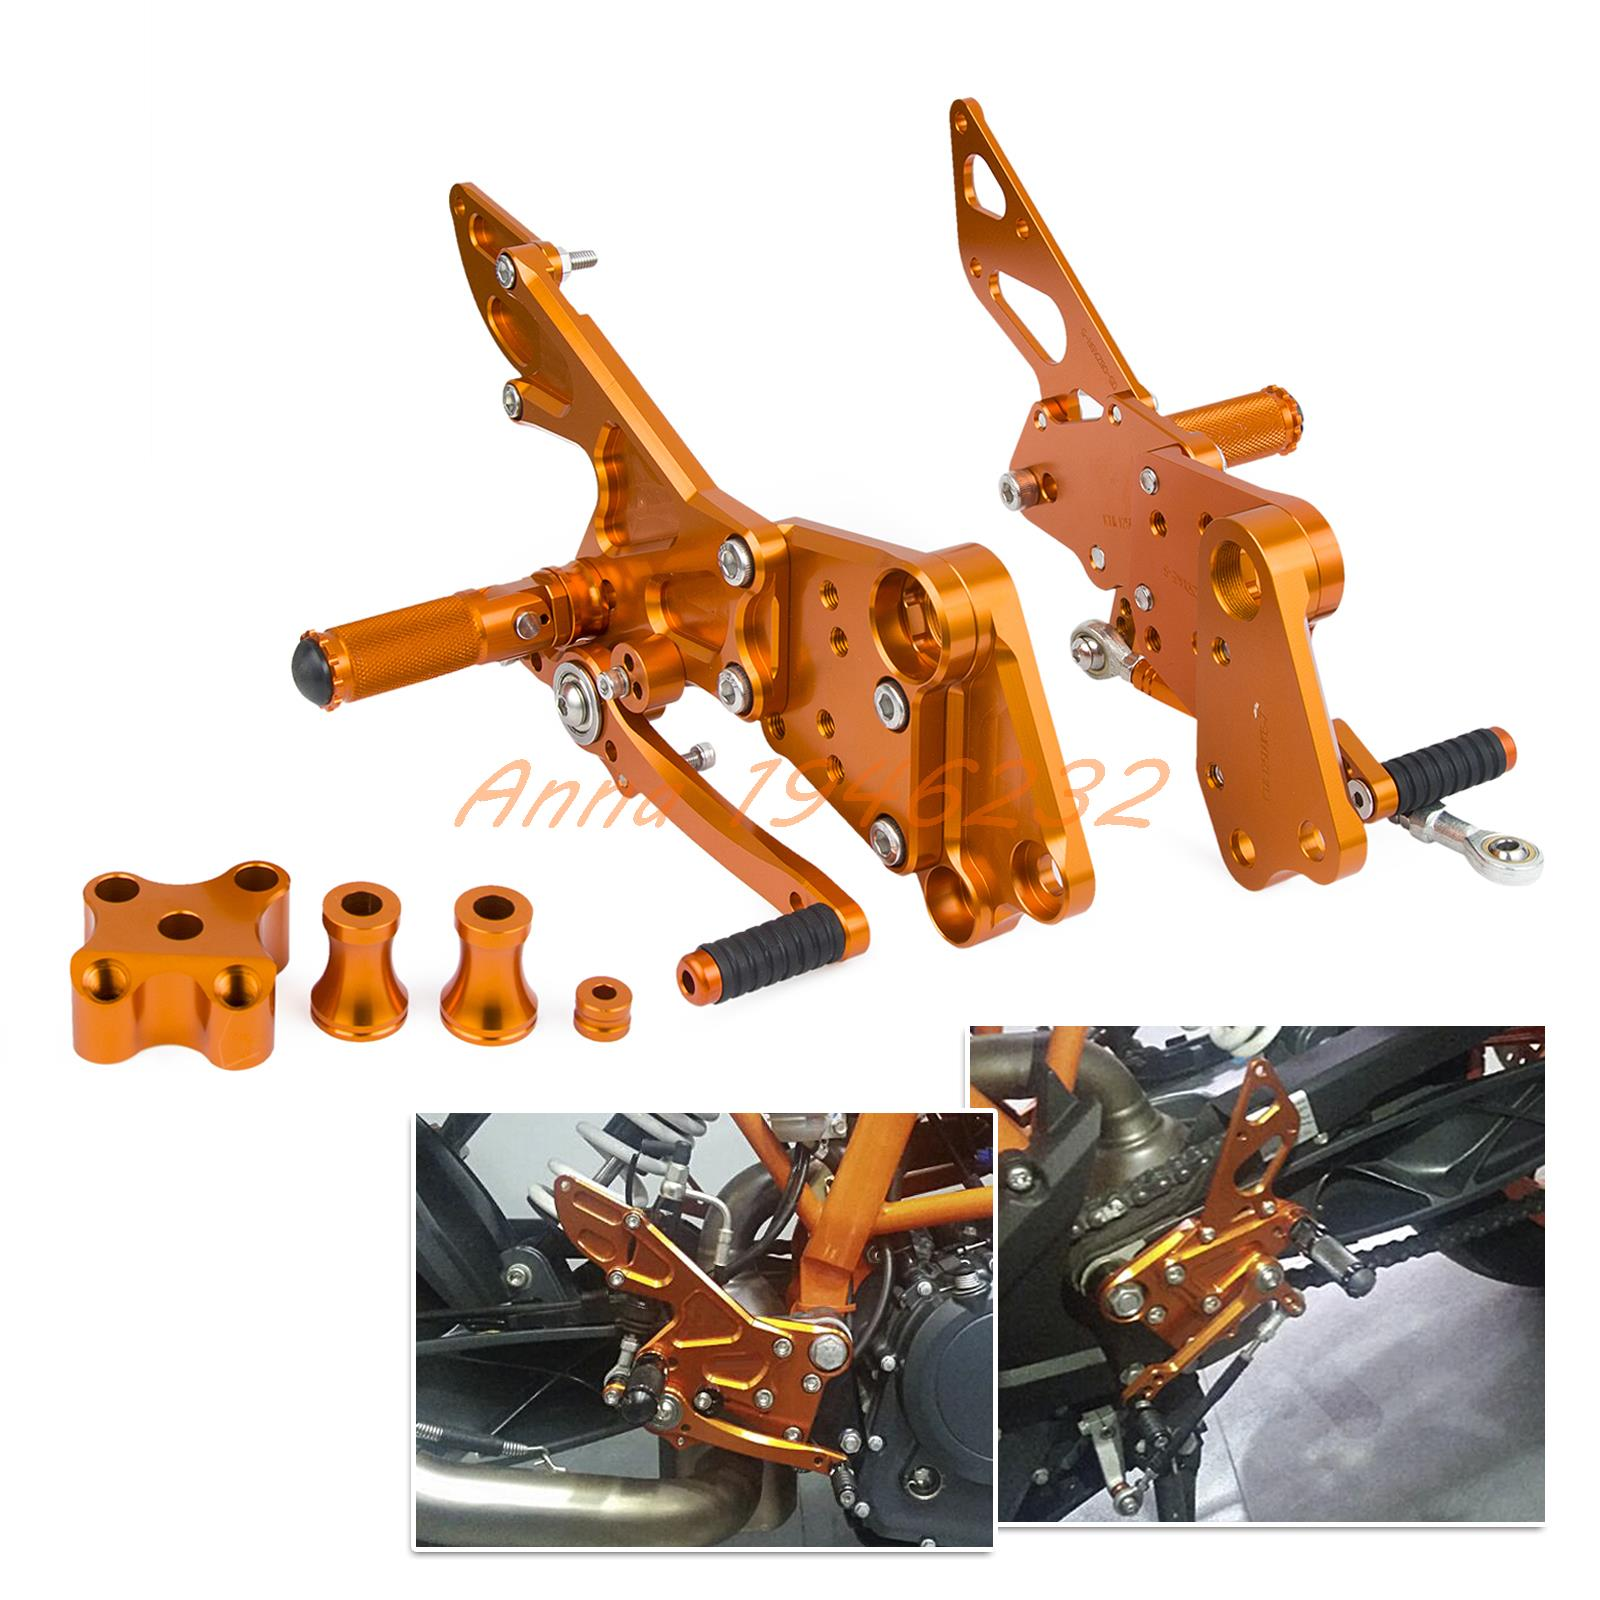 CNC Rear Passenger Footrest Bracket Sets For KTM 125/200/390 Duke 2011 2012 2013 2014 2015 2016 for ktm 390 duke motorcycle leather pillon rear passenger seat orange color